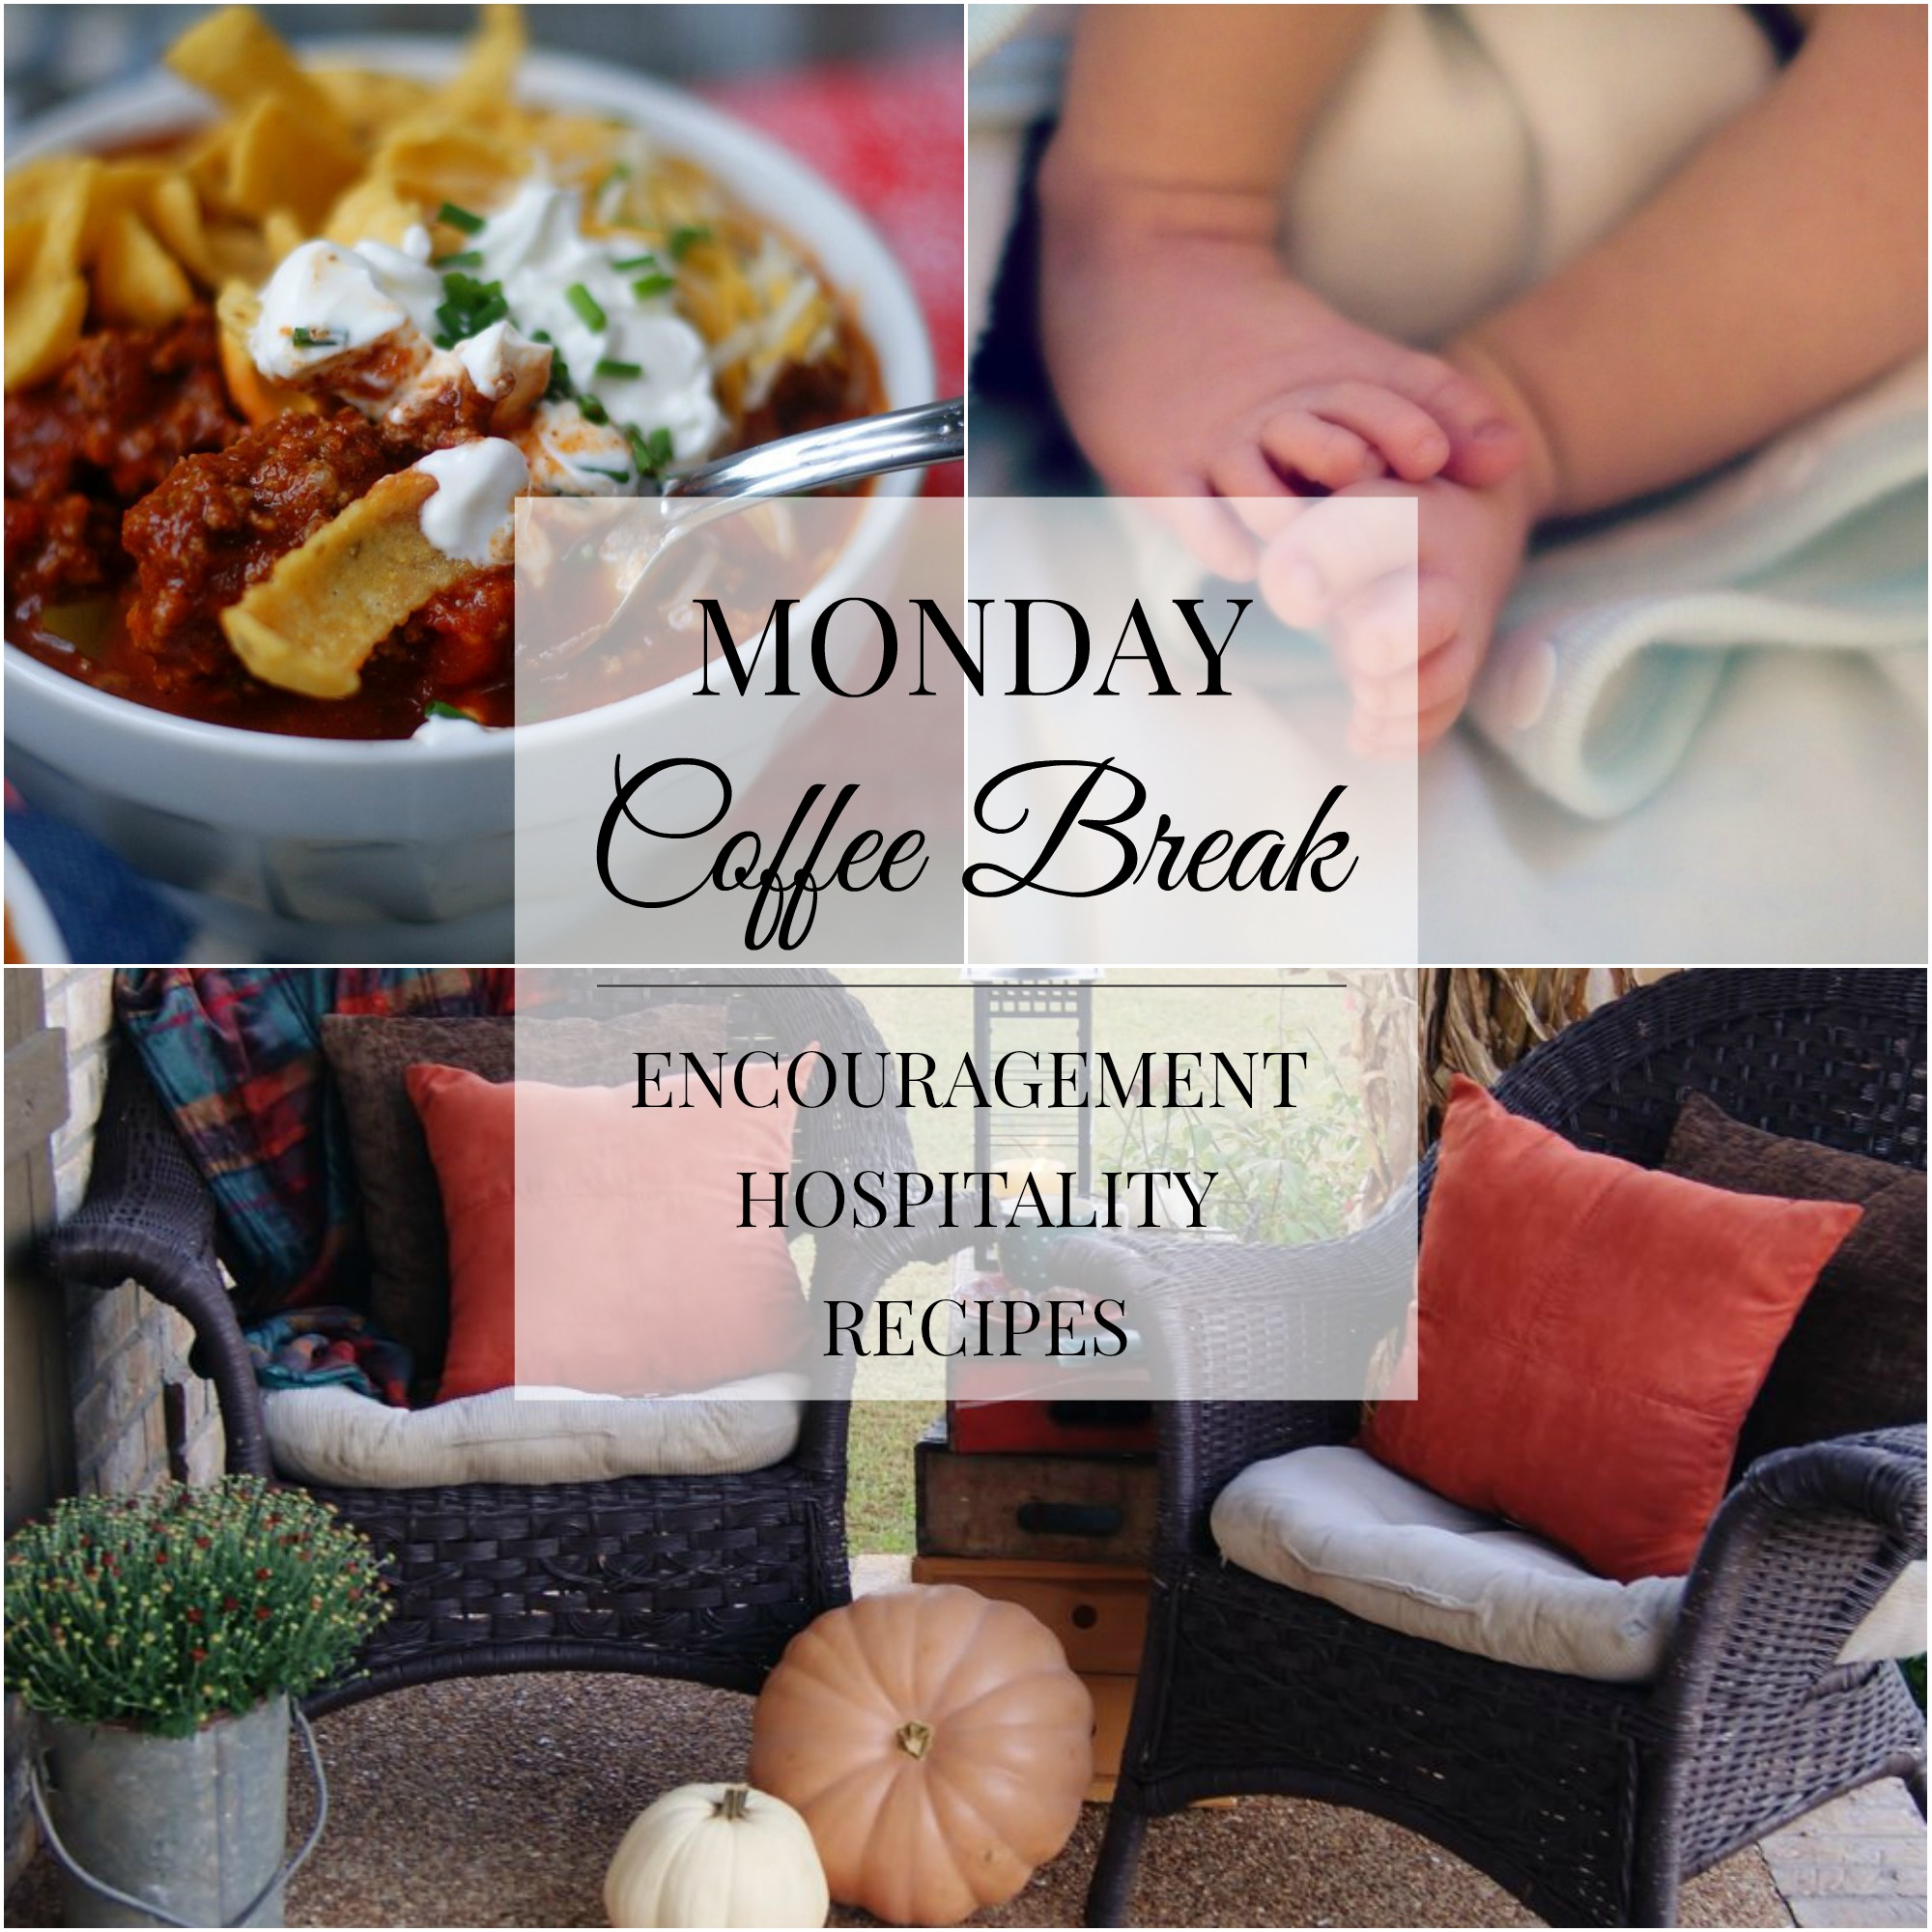 Monday Coffee Break #54 title collage